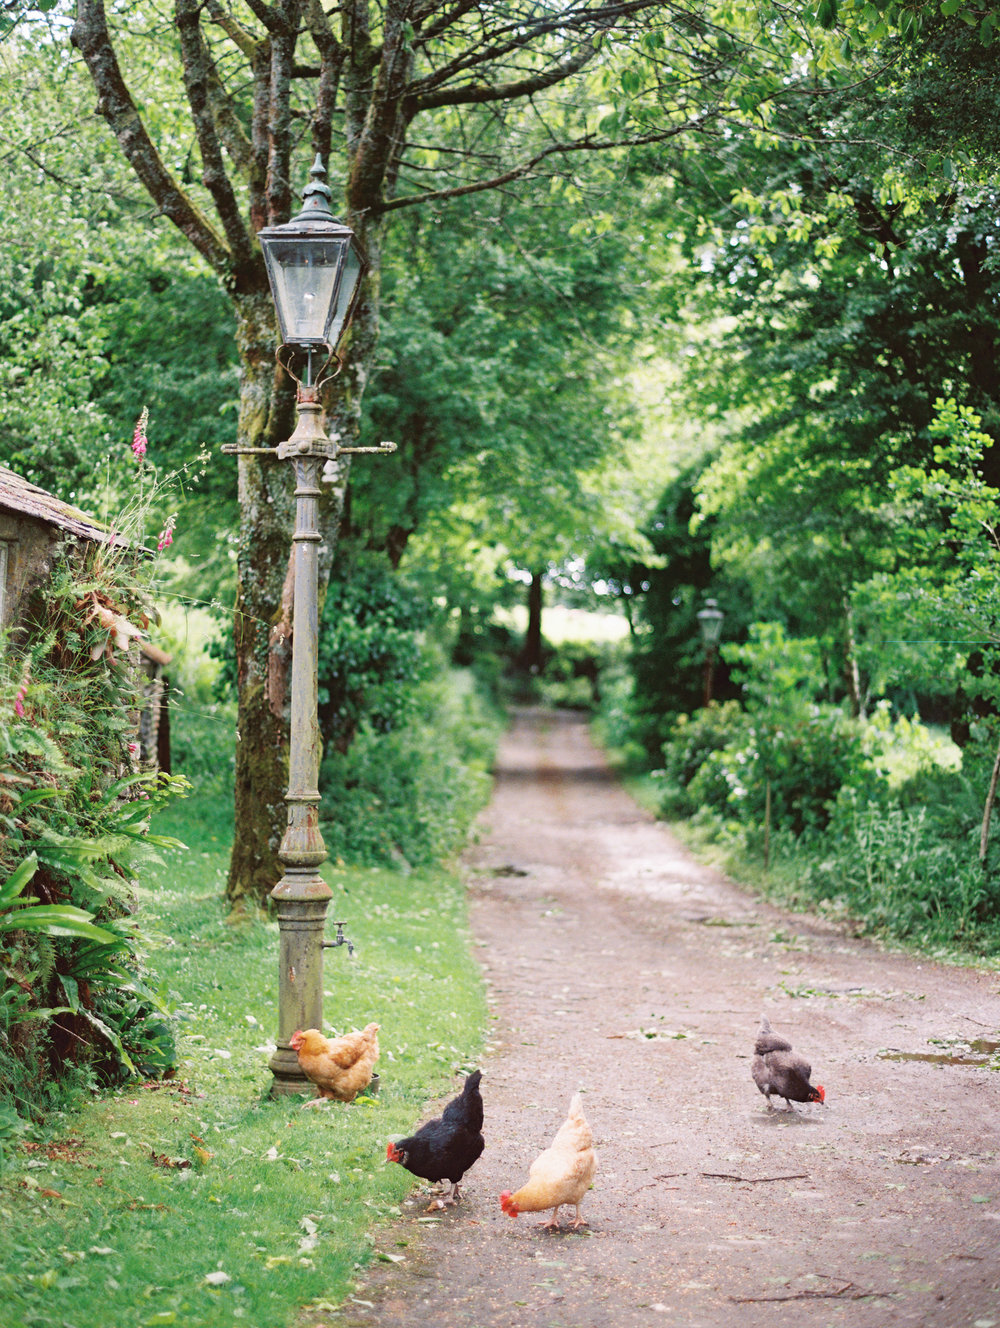 Farm Lane & Chickens